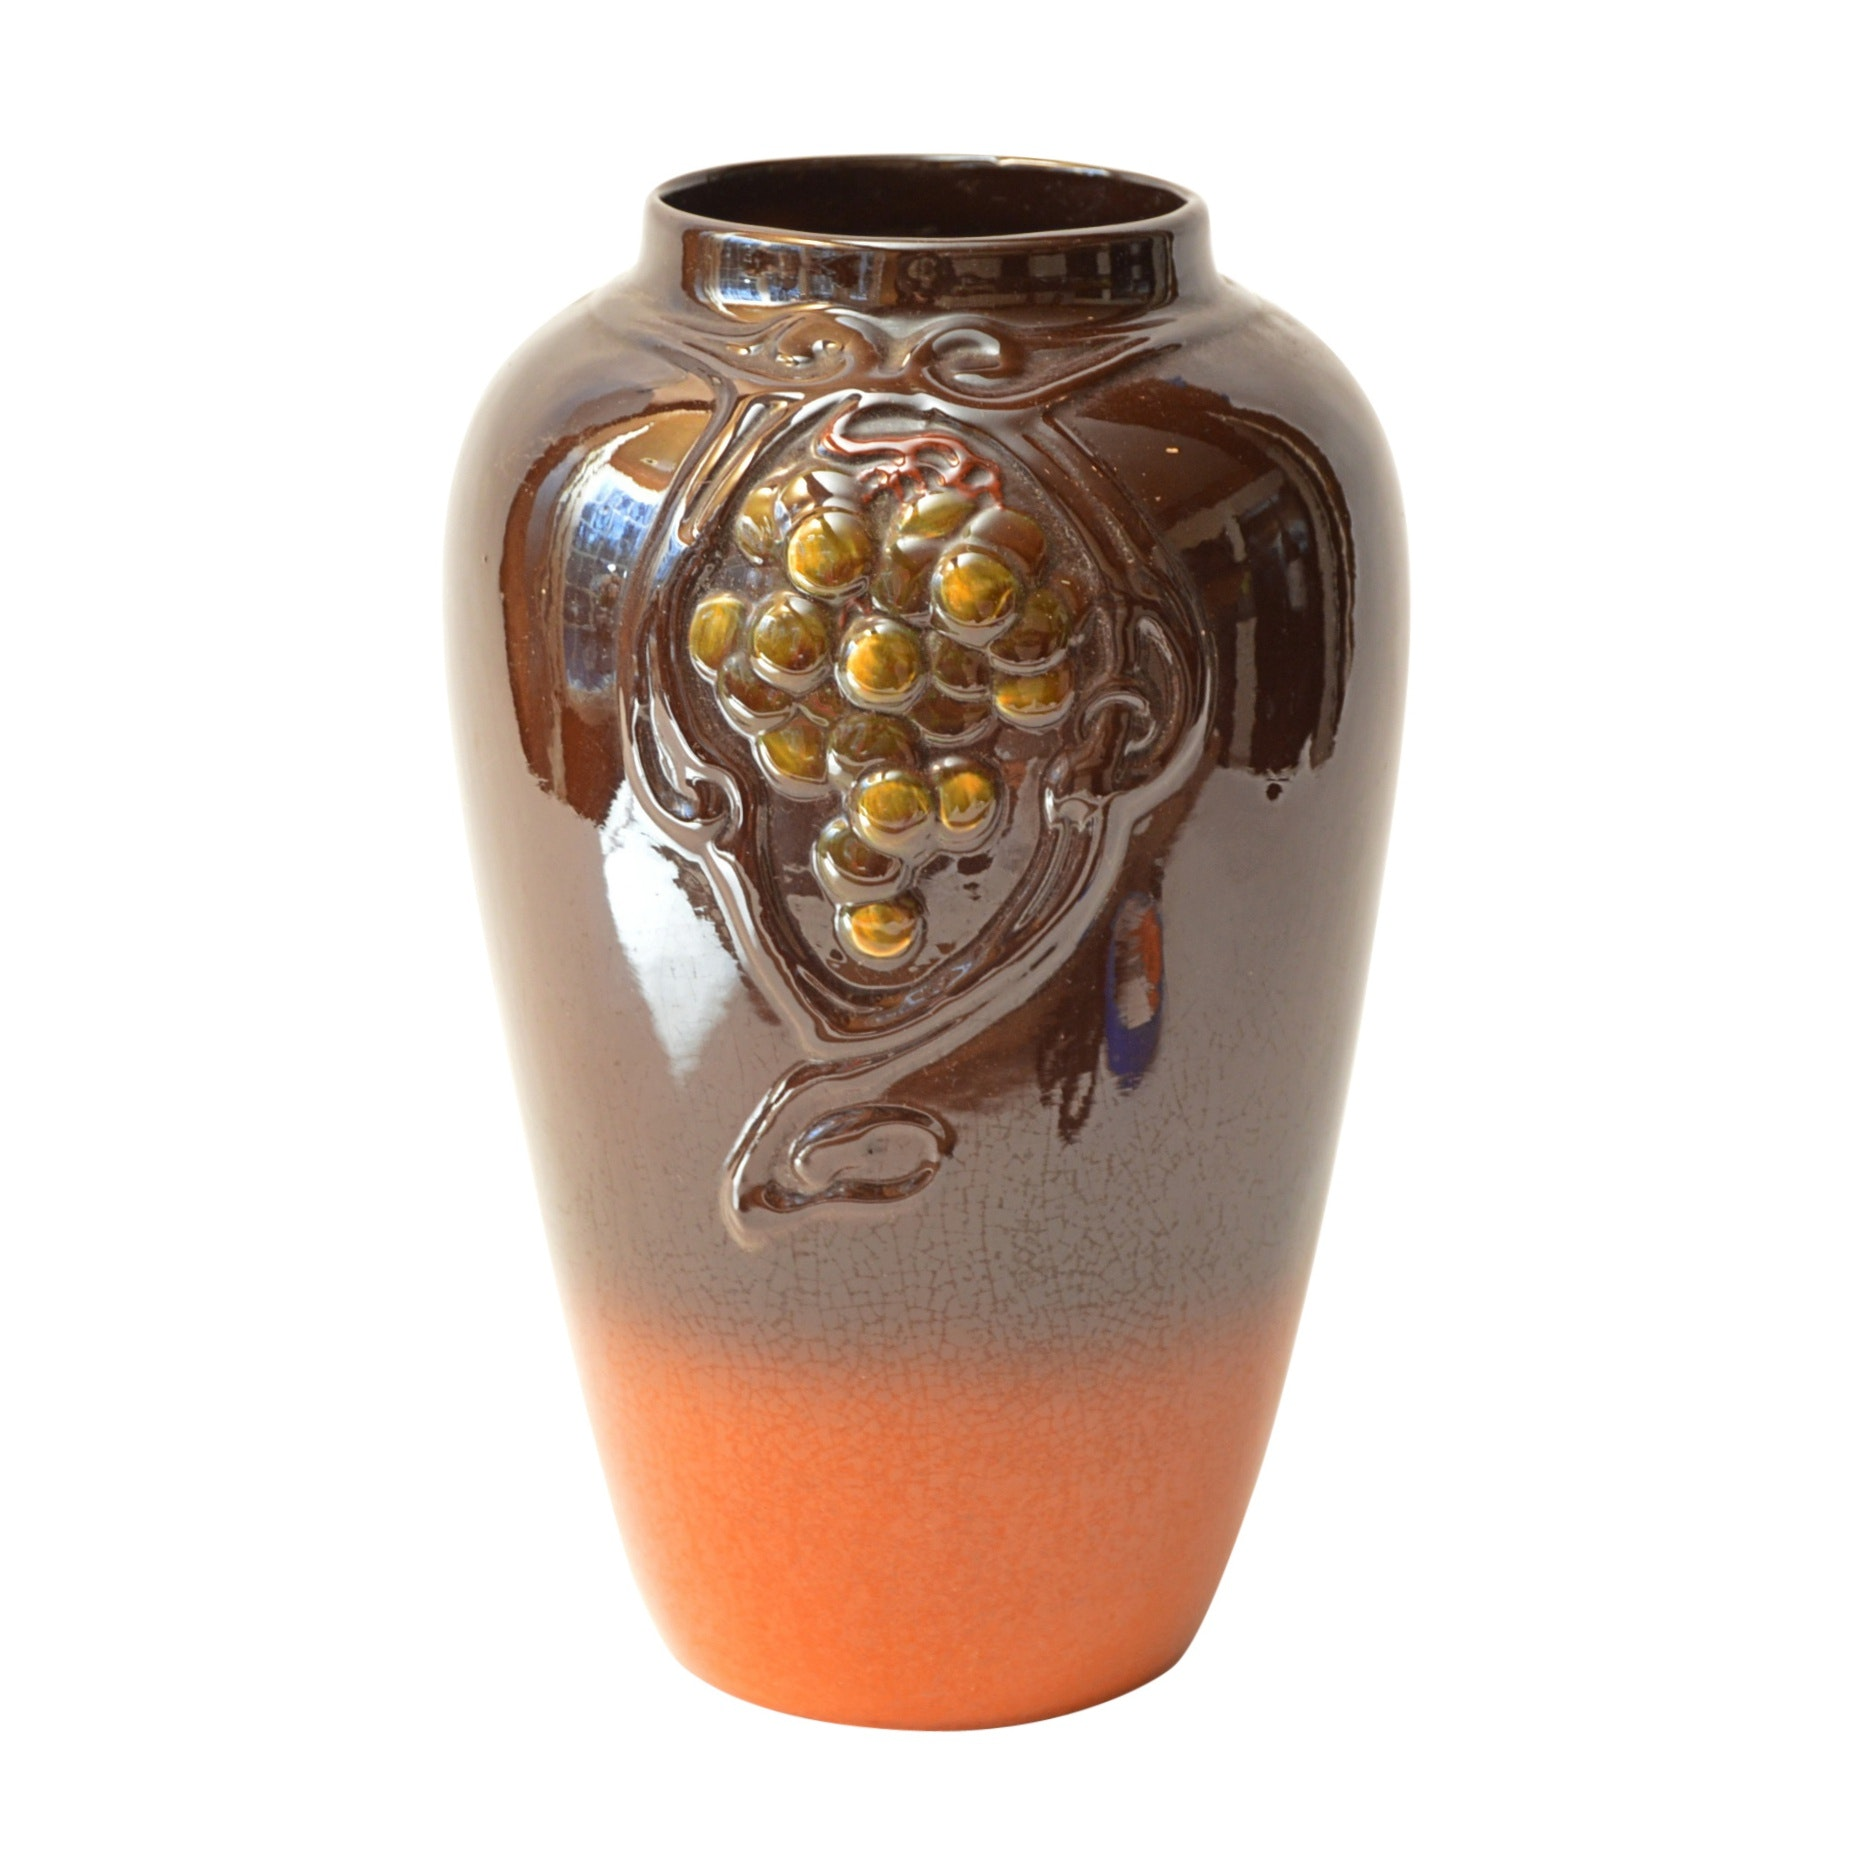 "Weller Pottery ""Floretta"" Vase, Early 20th Century"